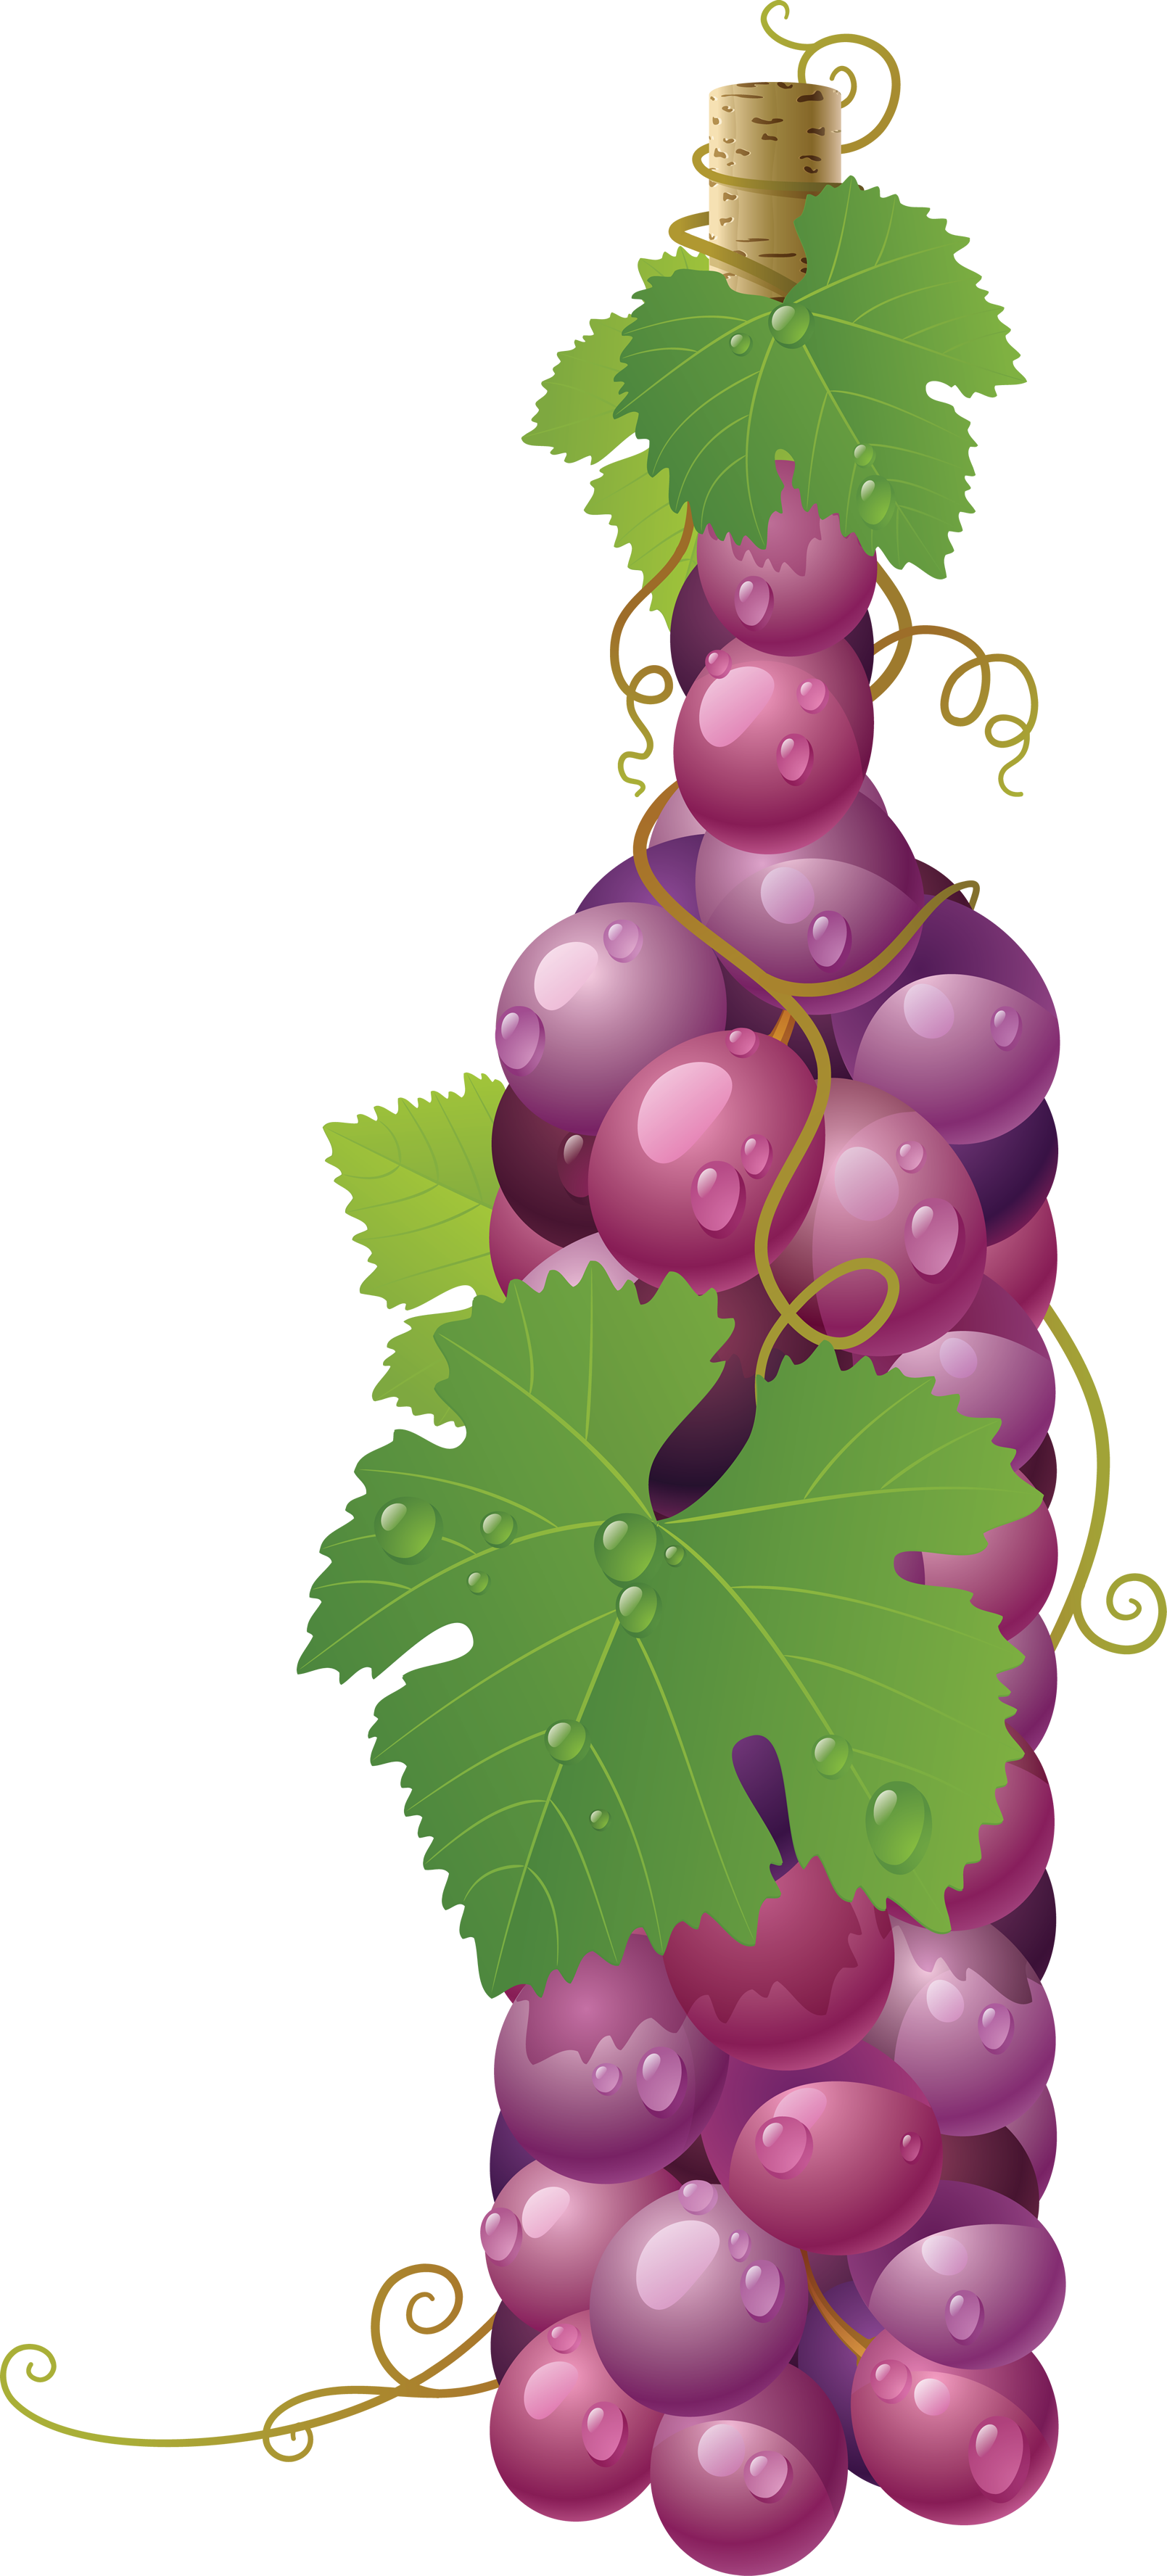 Winebottle out of Grapes PNG Image